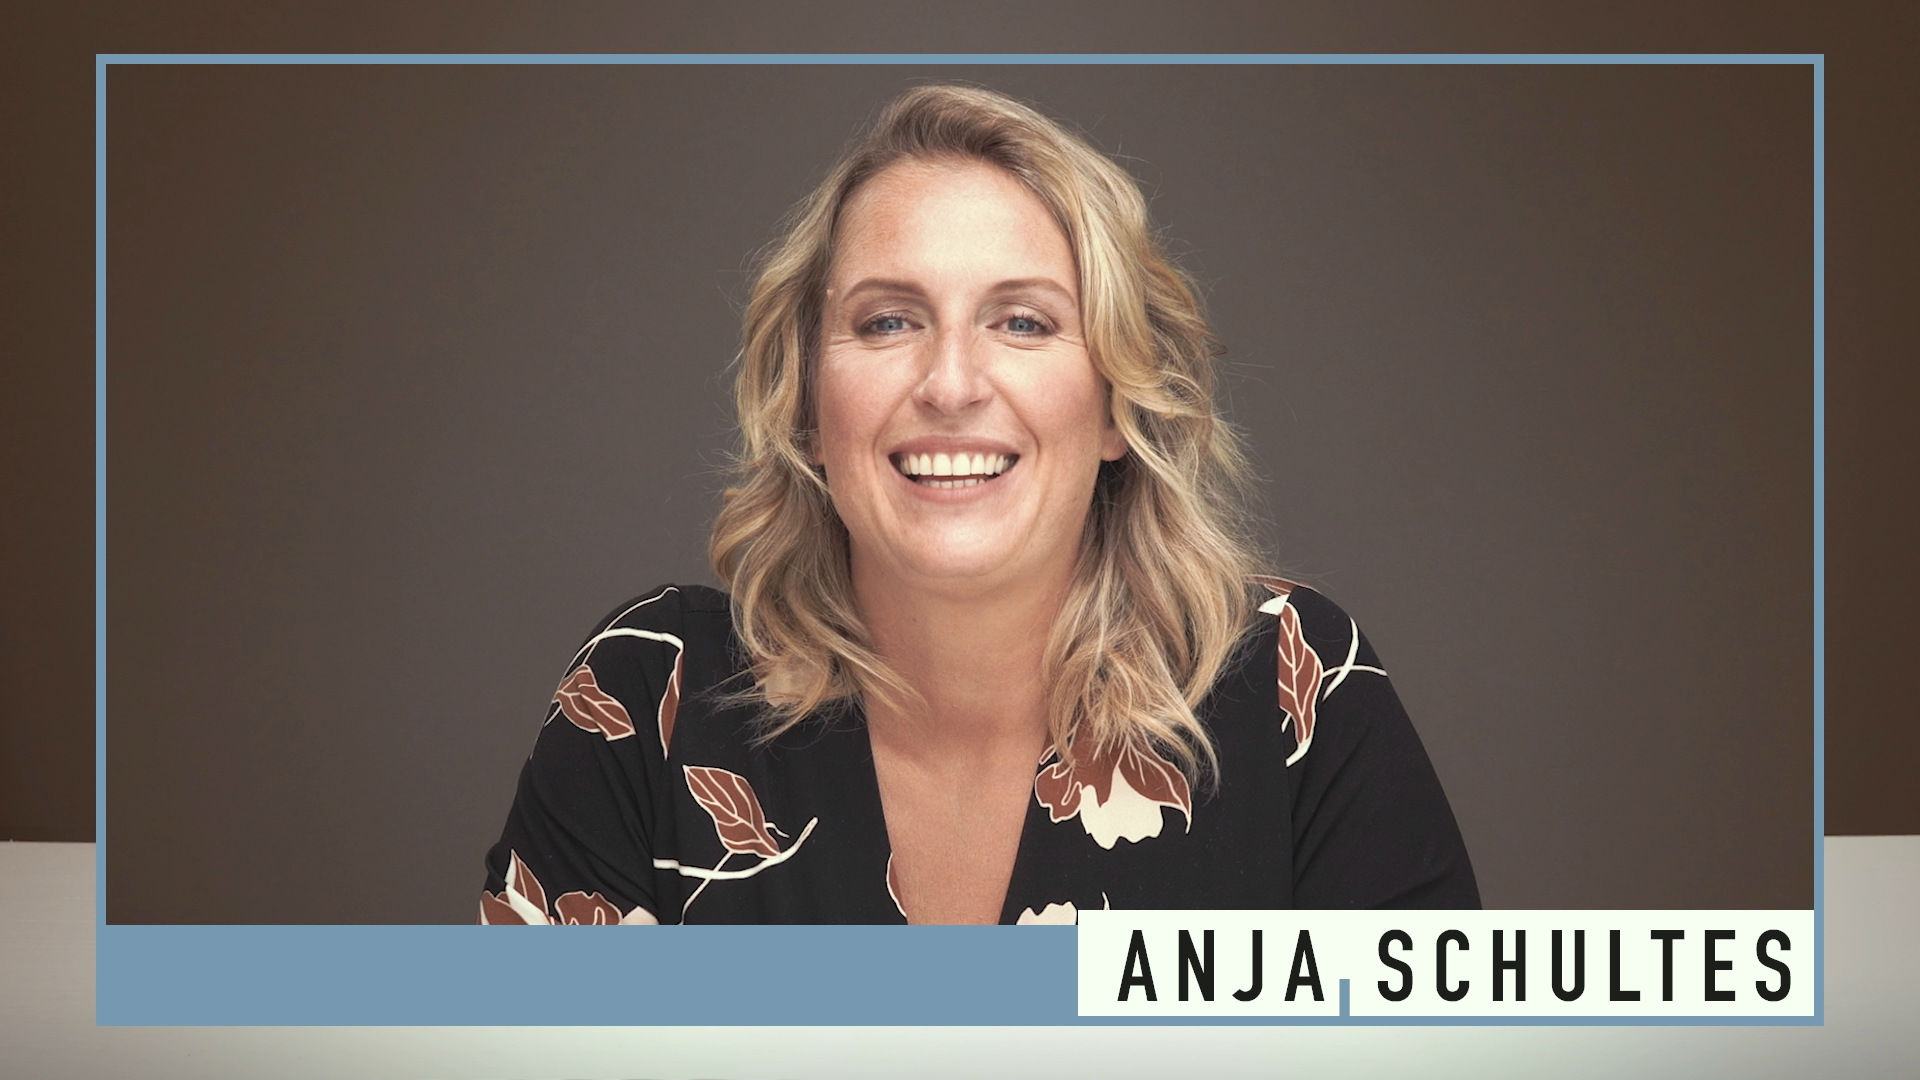 Anja-Schultes-Fuehrungsberaterin-Existenzberaterin